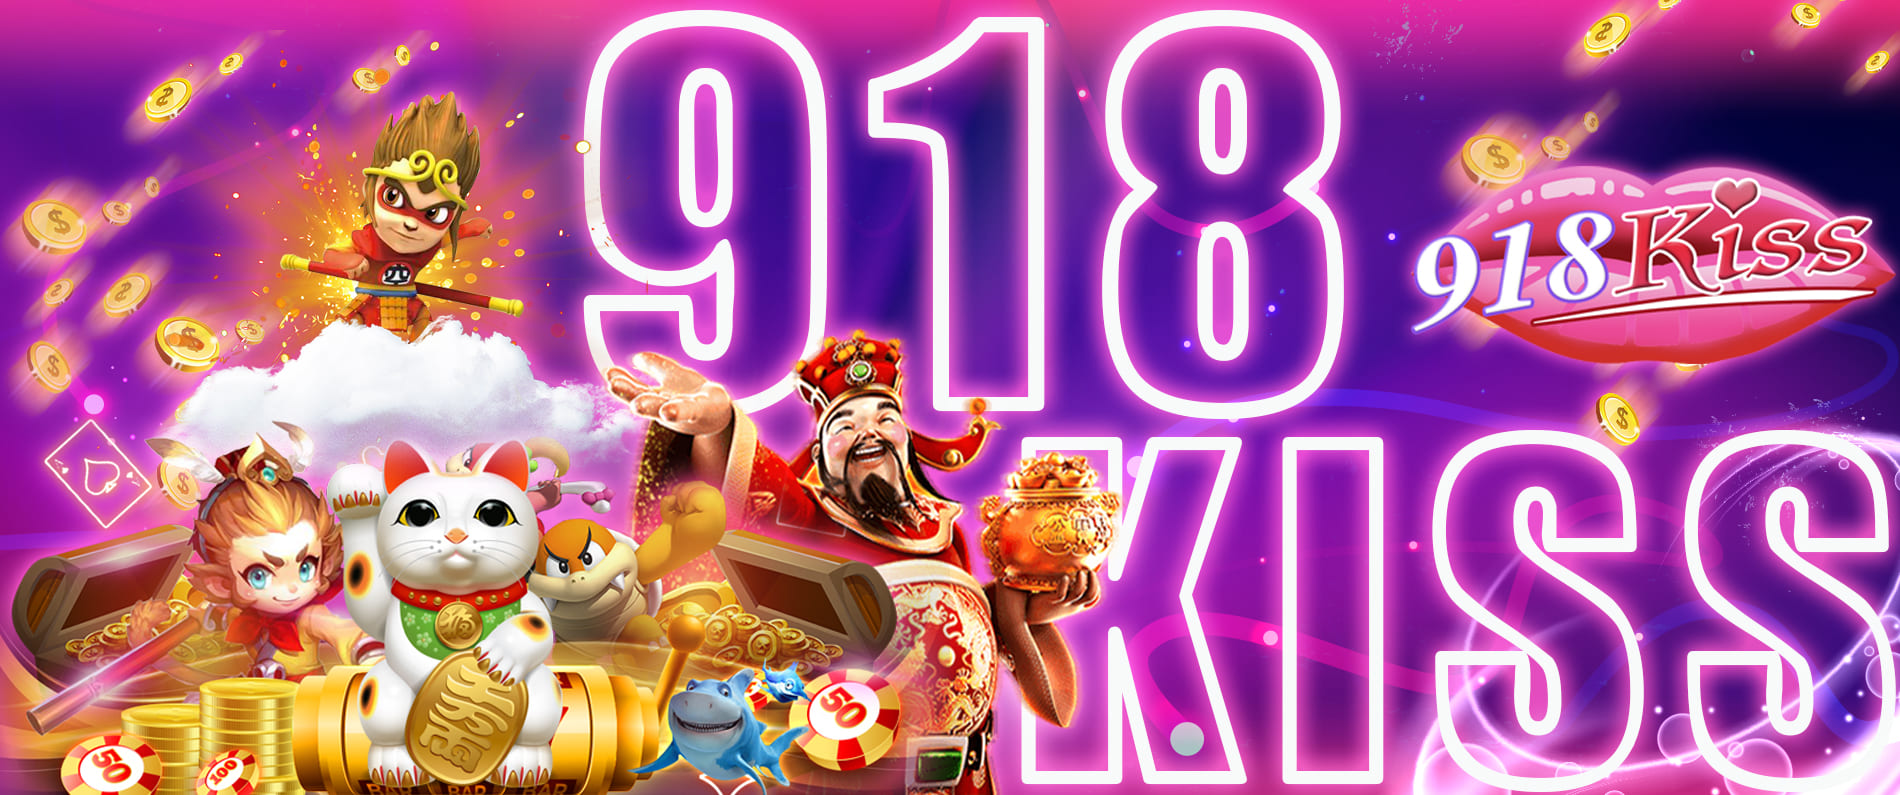 918kiss-slot-8-BIGWIN369-4